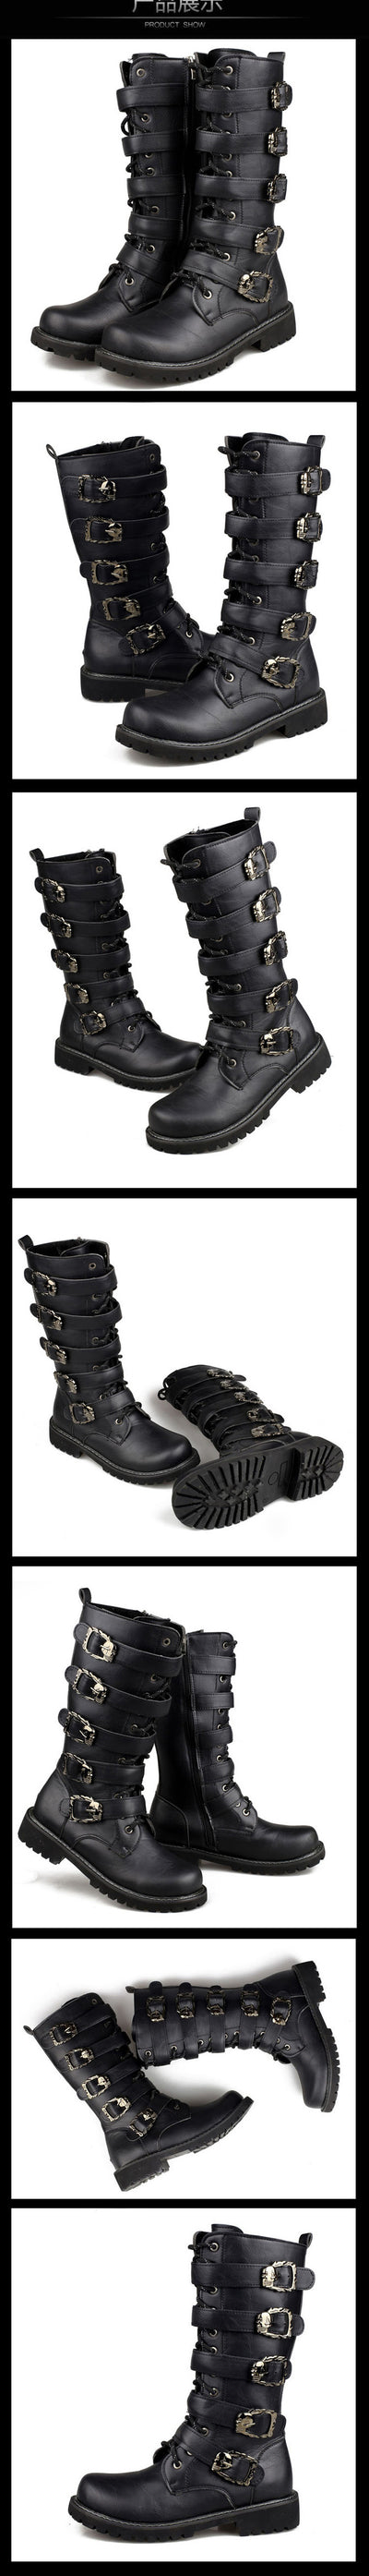 Winter Men Motorcycle Boots 2018 Fashion Mid-Calf Punk Rock Punk Shoes Mens PU Leather Black High top Casual Boot Man